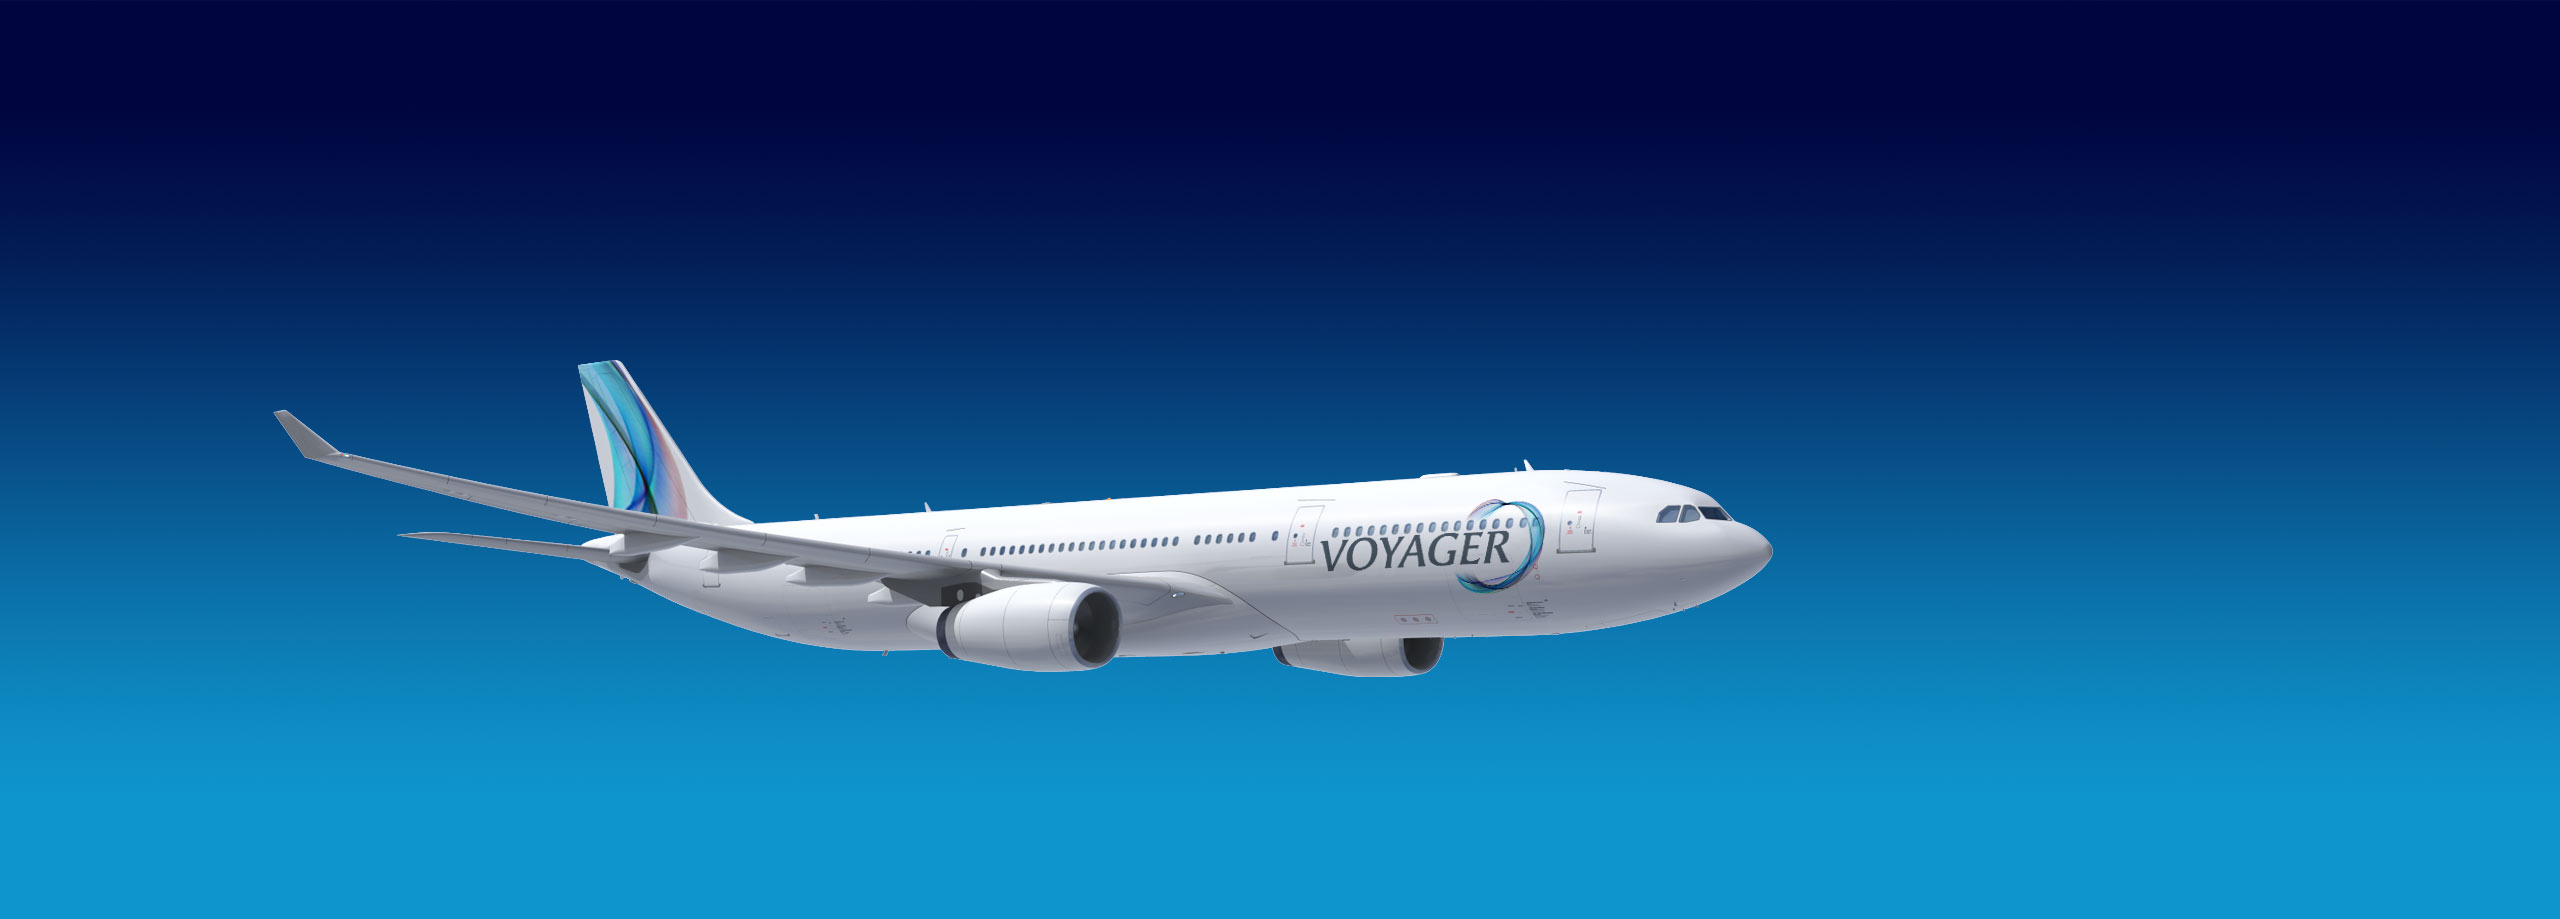 Voyager Aviation Holdings